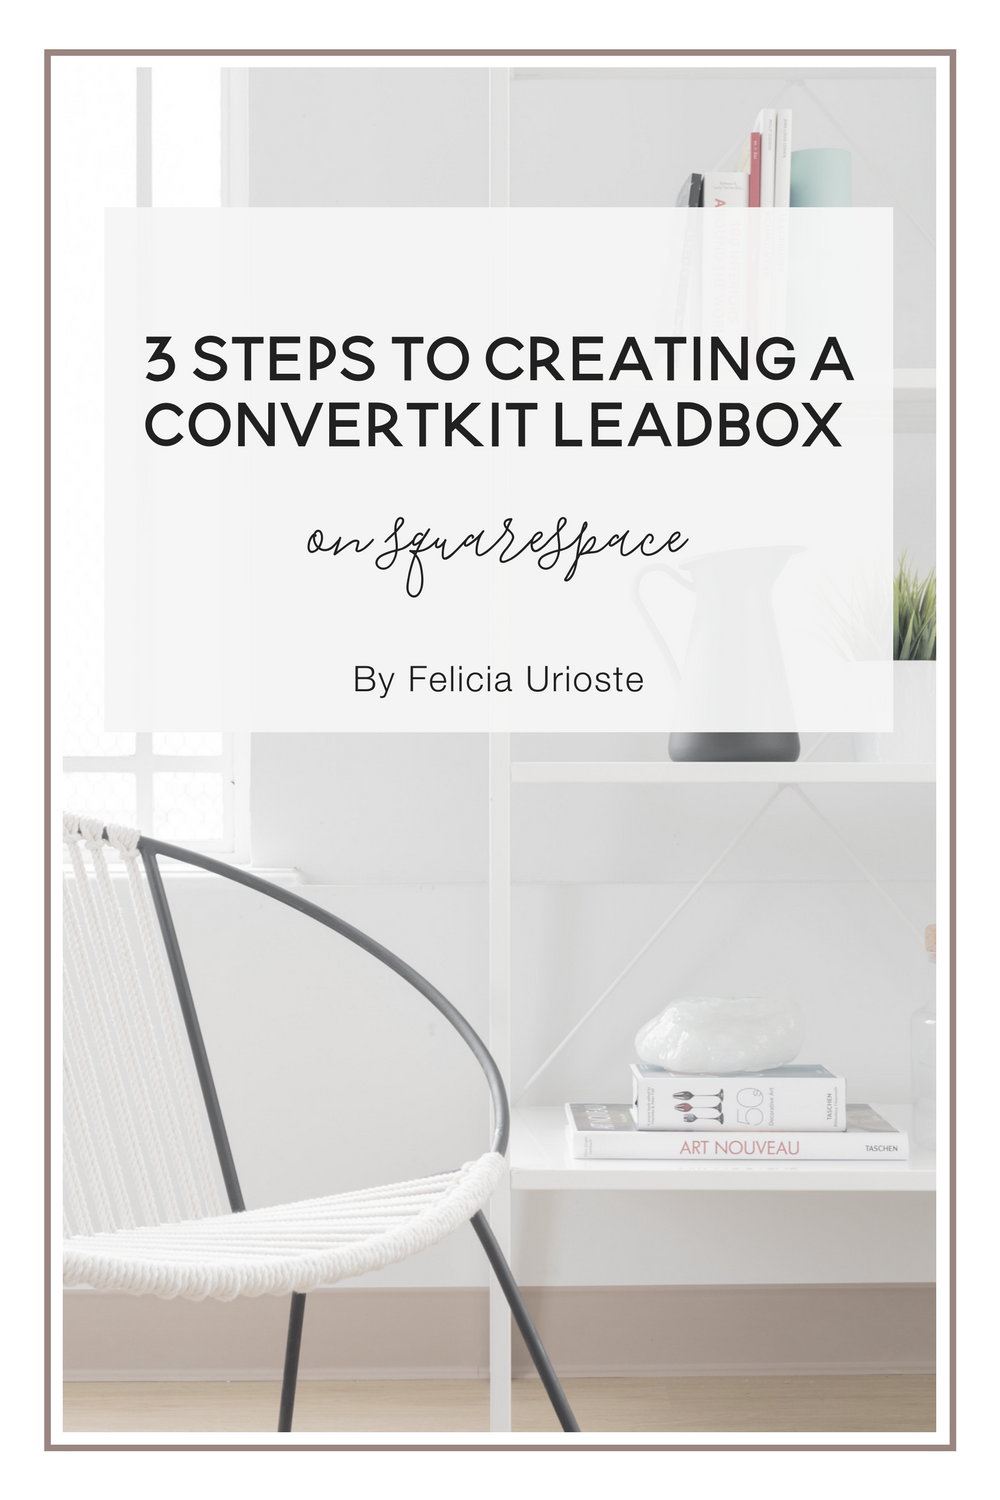 If you use Squarespace and ConvertKit, then you know that there is no way  of creating a lead box on Squarespace unless you buy lead pages or use a  third party app.  The problem with using a third party app is that ConvertKit does not track  analytics which is one of the main reasons for usin